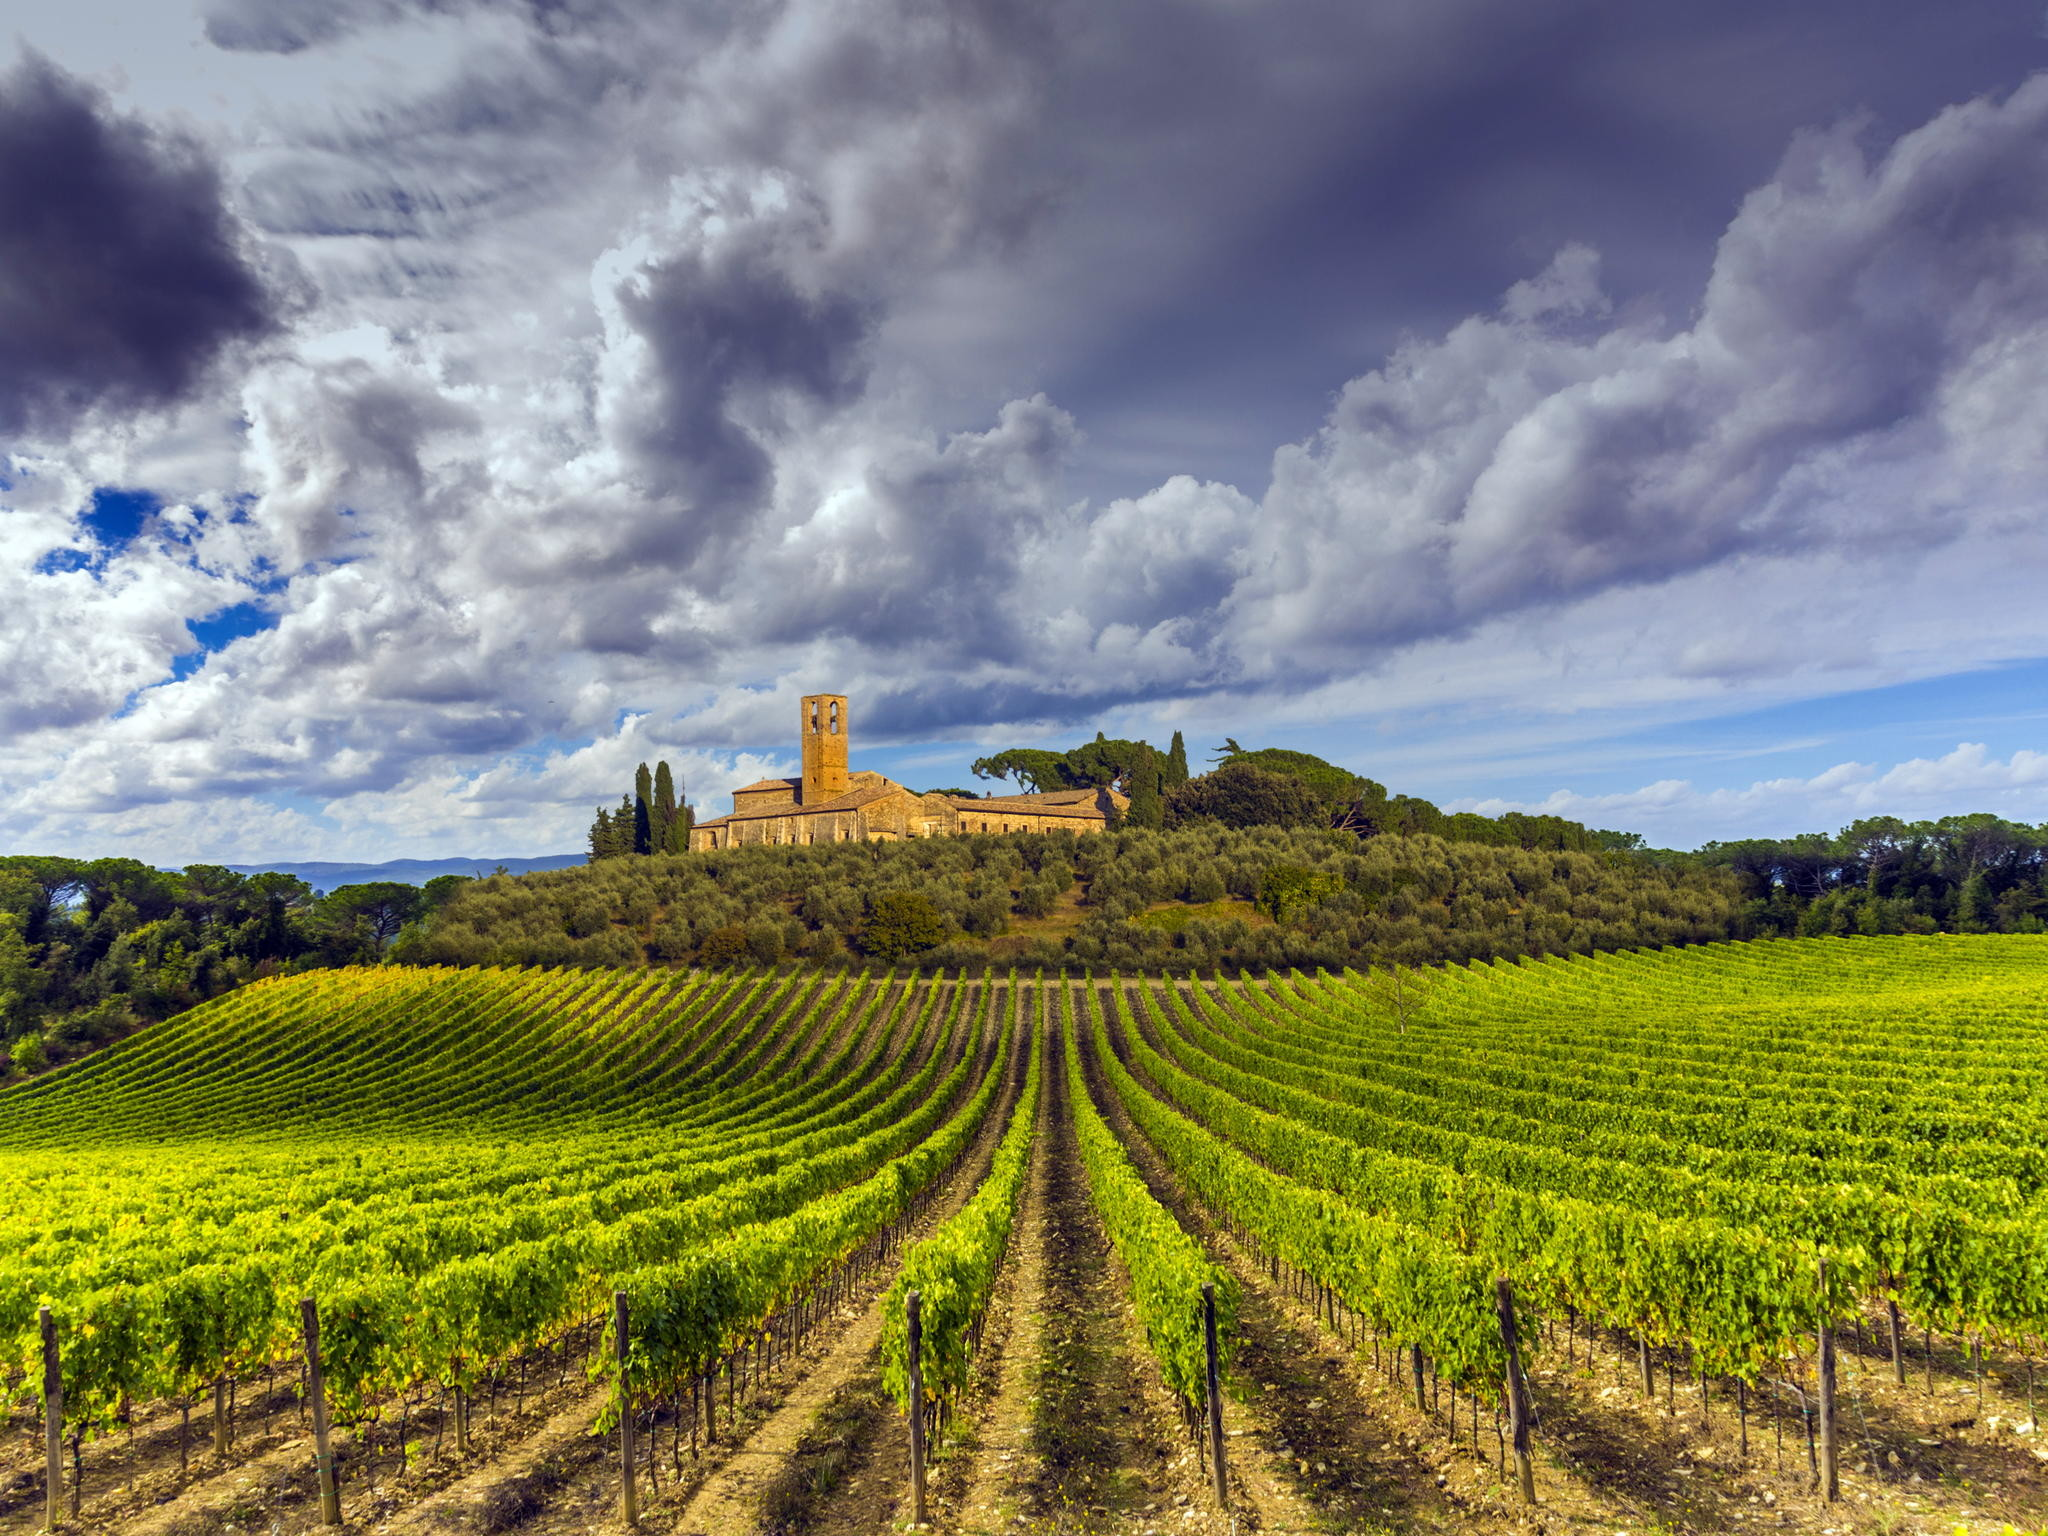 2048x1536 Tuscany Desktop Wallpaper - wallpaper.